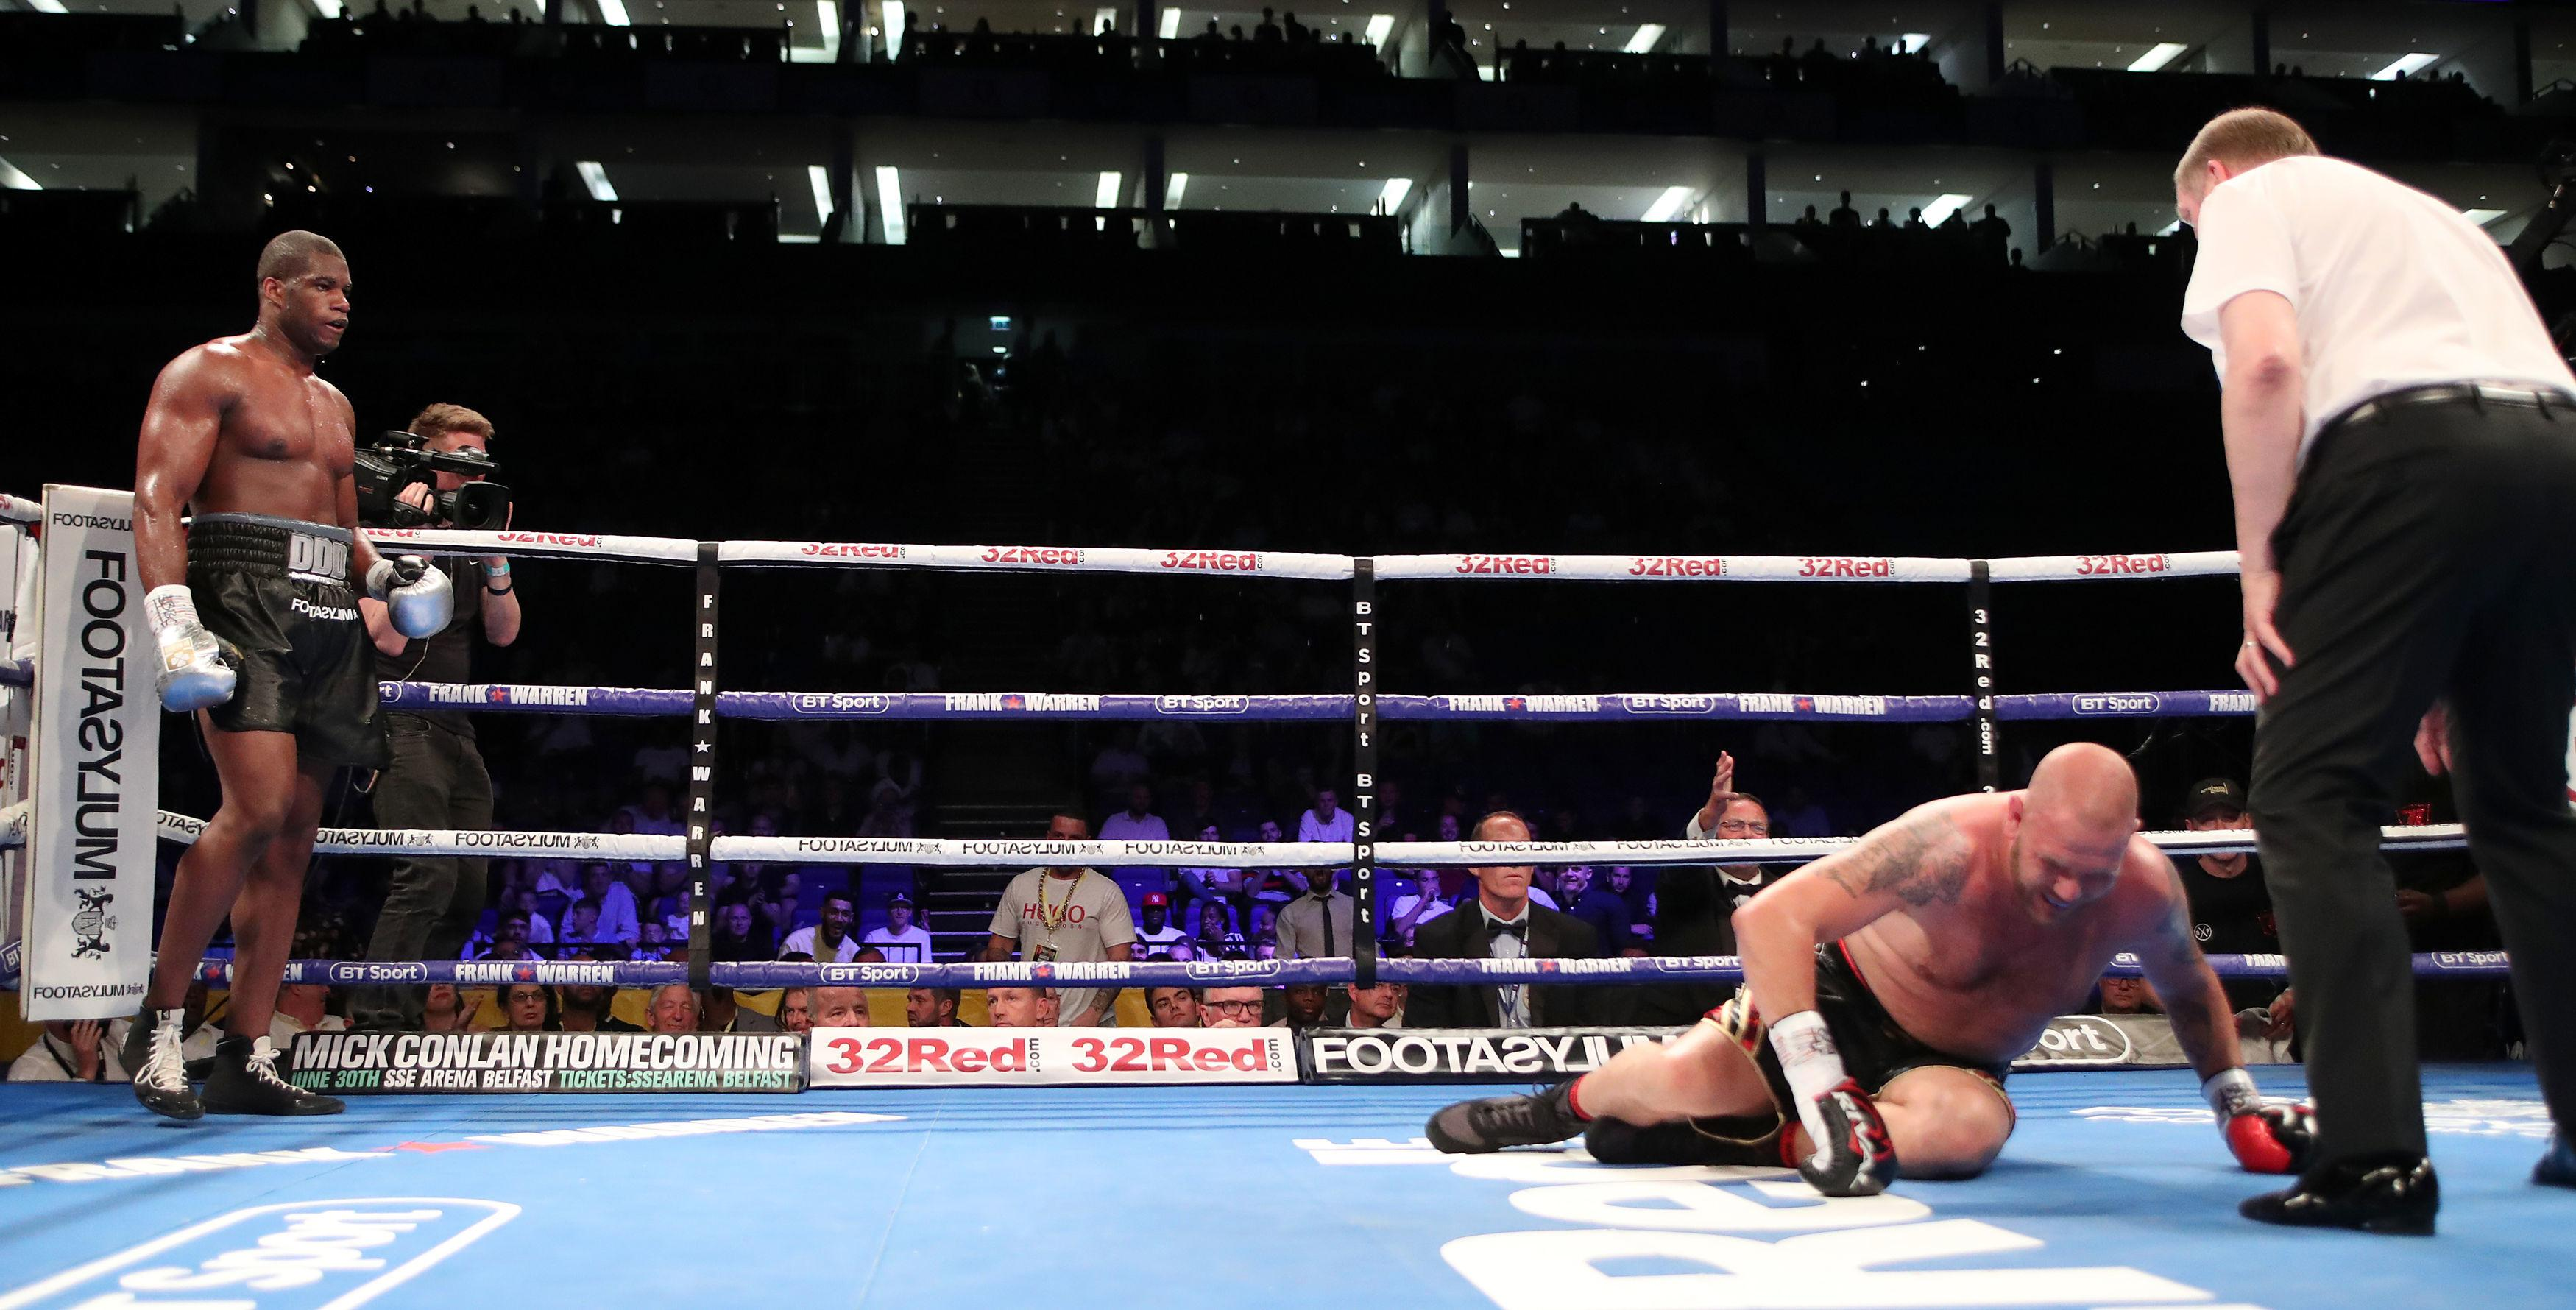 Daniel Dubois won his his first major title with an impressive against Tom Little